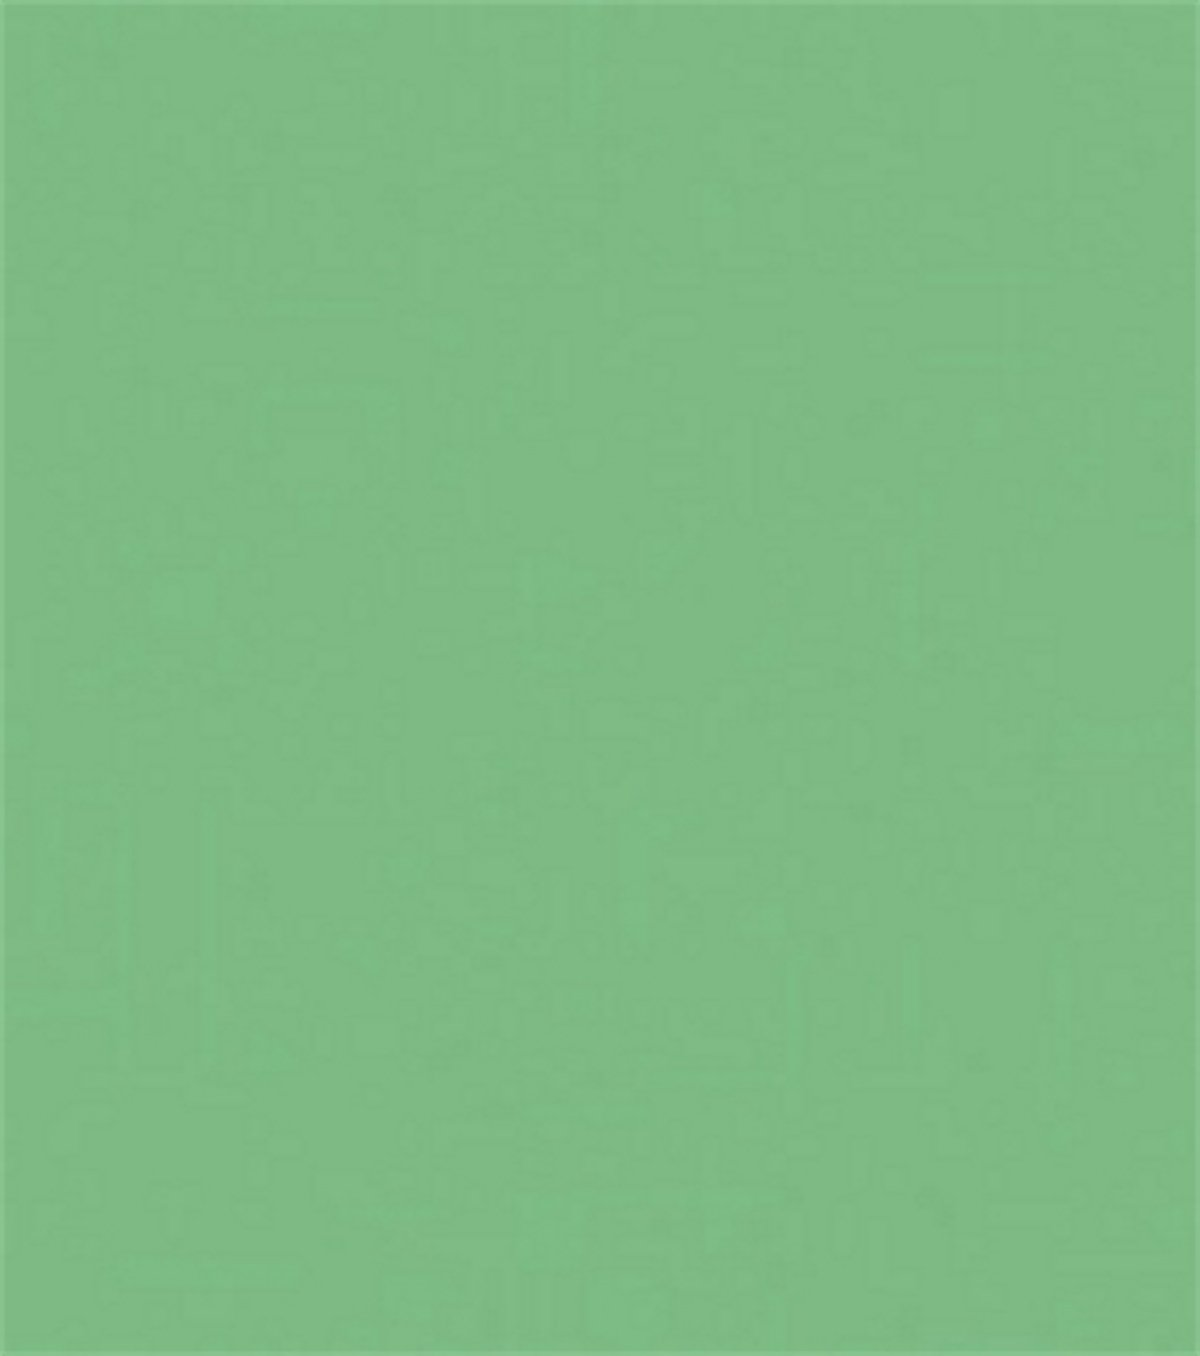 Richlin Fabrics POLY/COT-BC002 Broadcloth Solid 45 in. Wide 65 Percent Polyester-35 Percent Cotton D-R-Emerald - 20 Yards   B002PXPABE